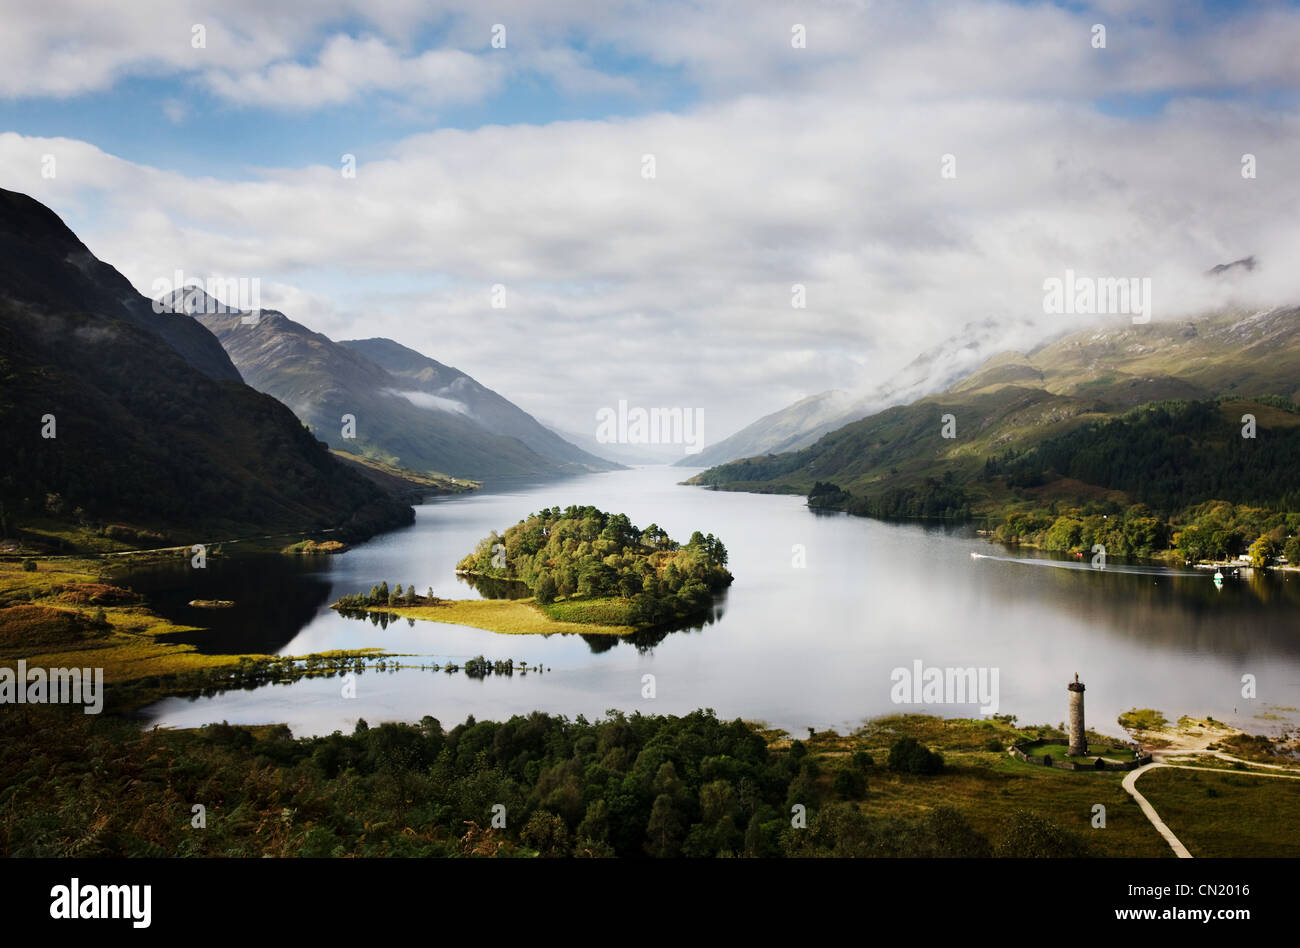 Misty mountain and lake, Scotland, UK - Stock Image